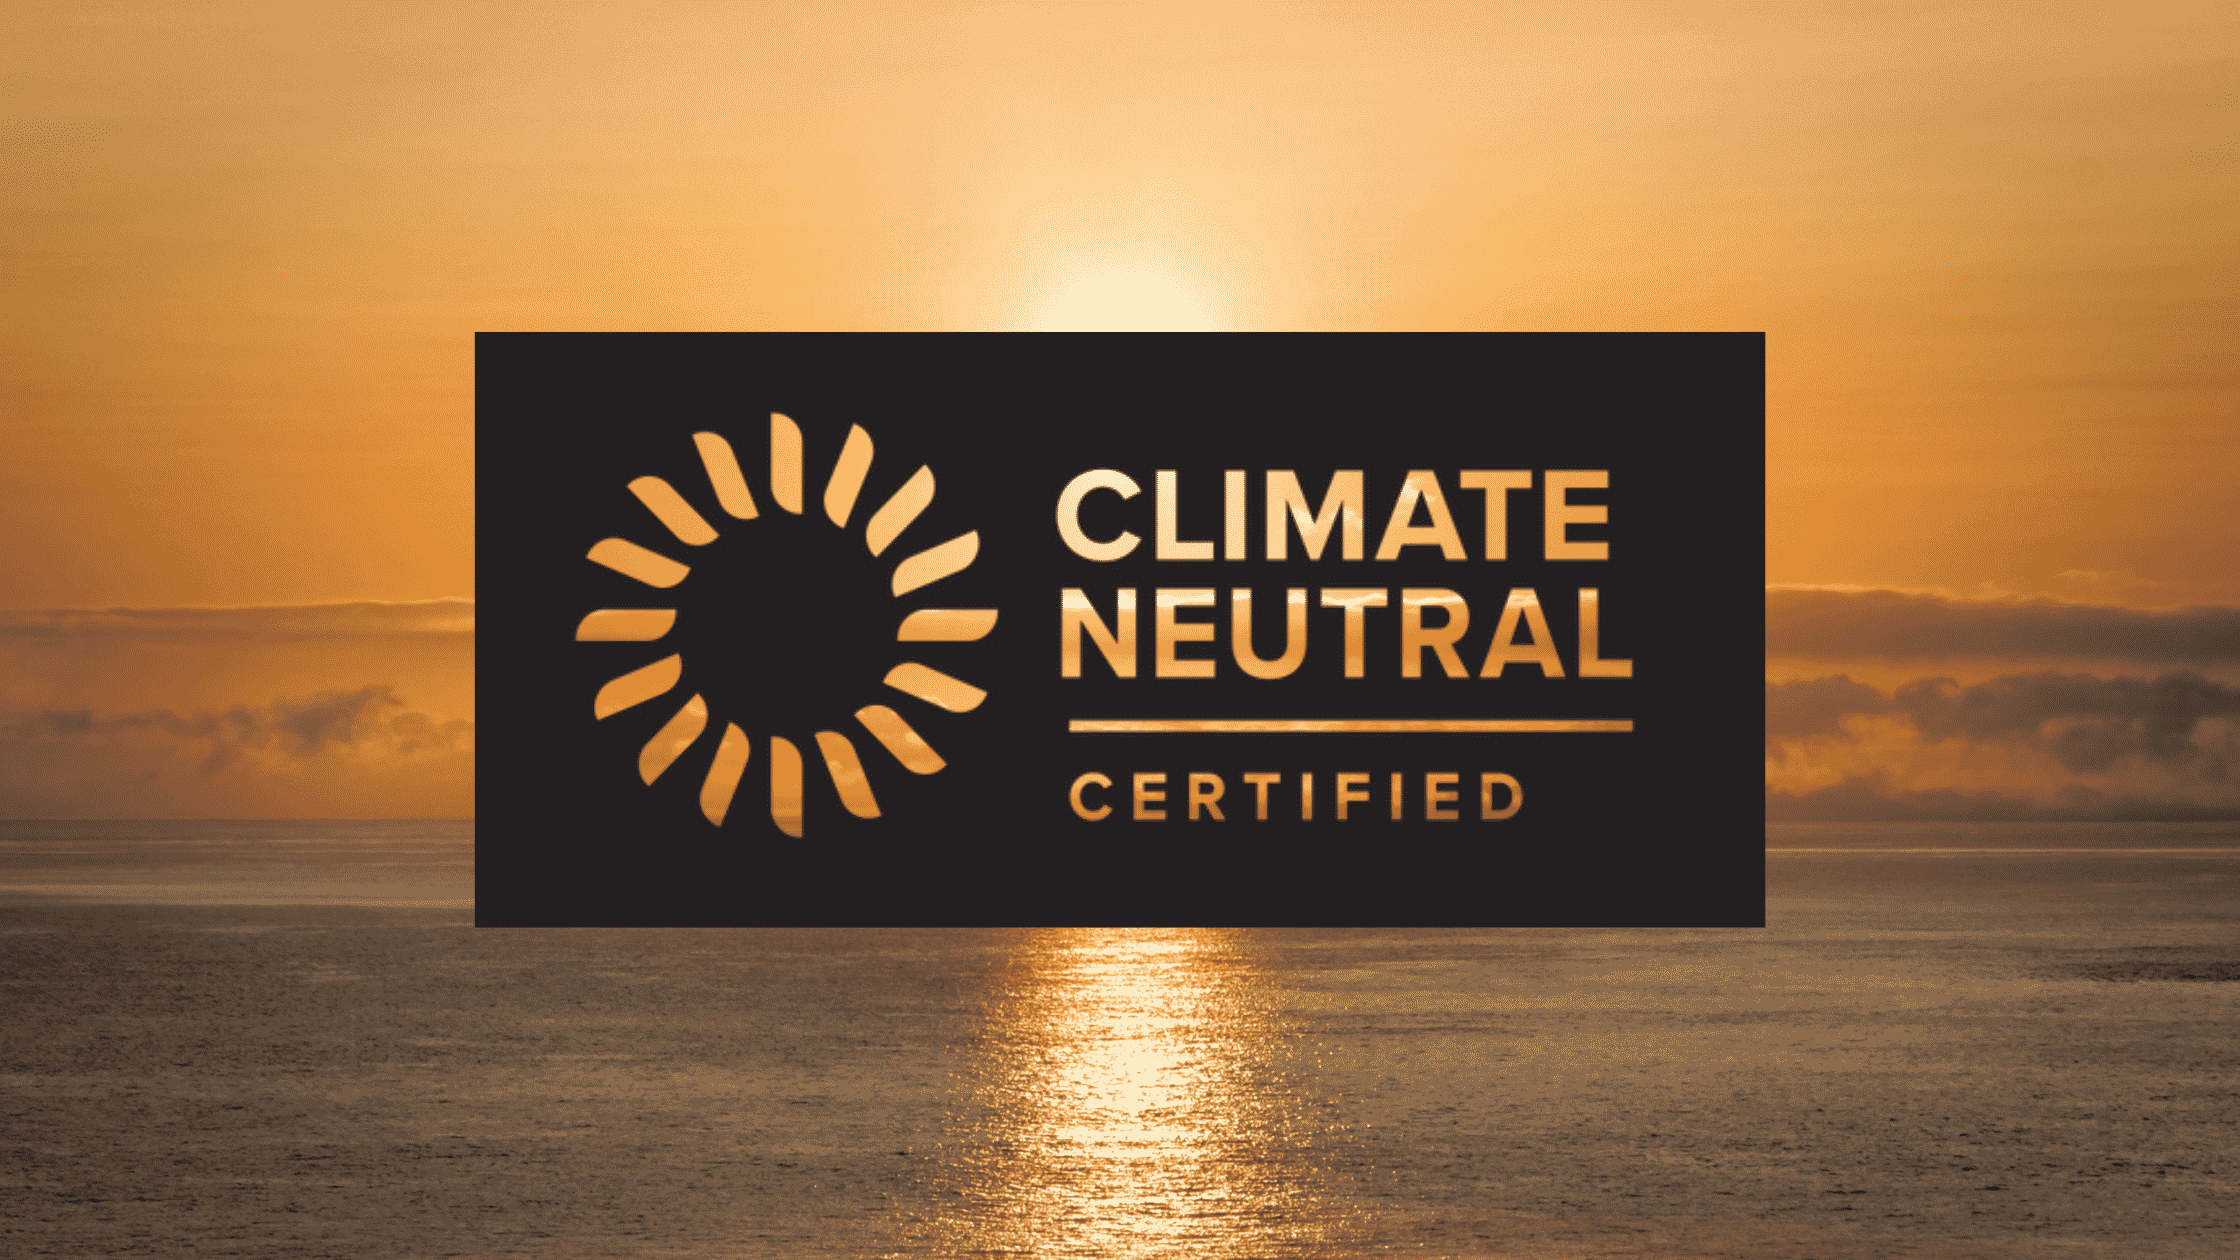 sunrise over the ocean with the climate neutral certification logo